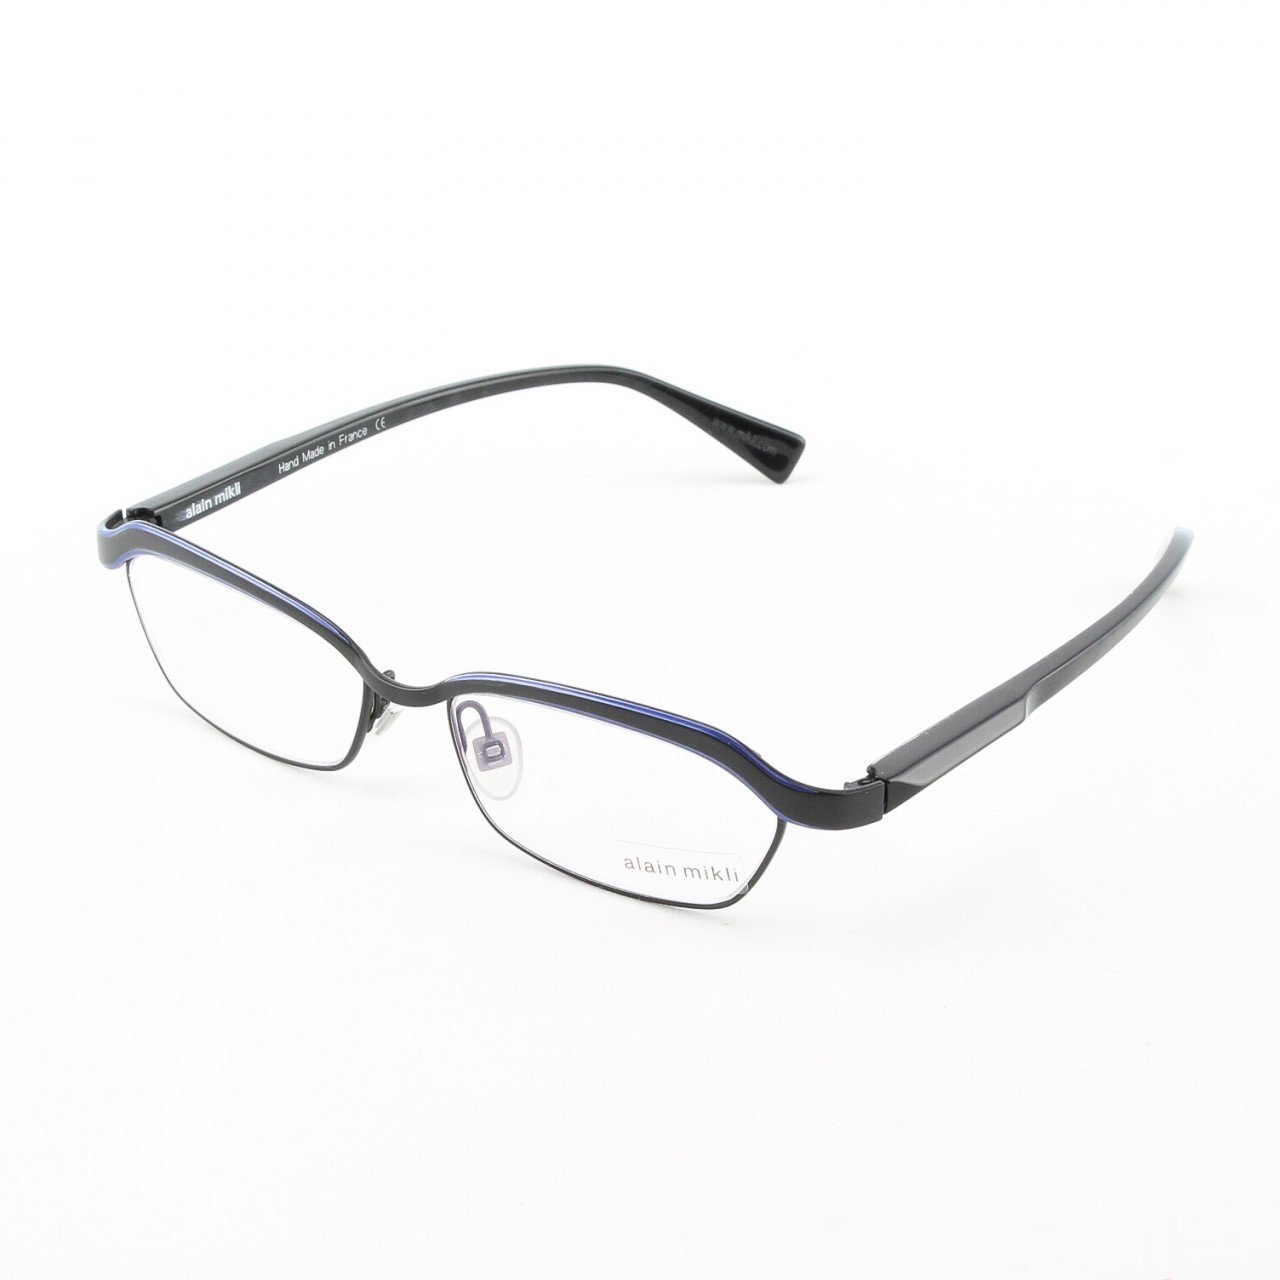 Alain Mikli Eyeglasses AL1022 Col. 4 Matte Black with Purple Marbelized Temples